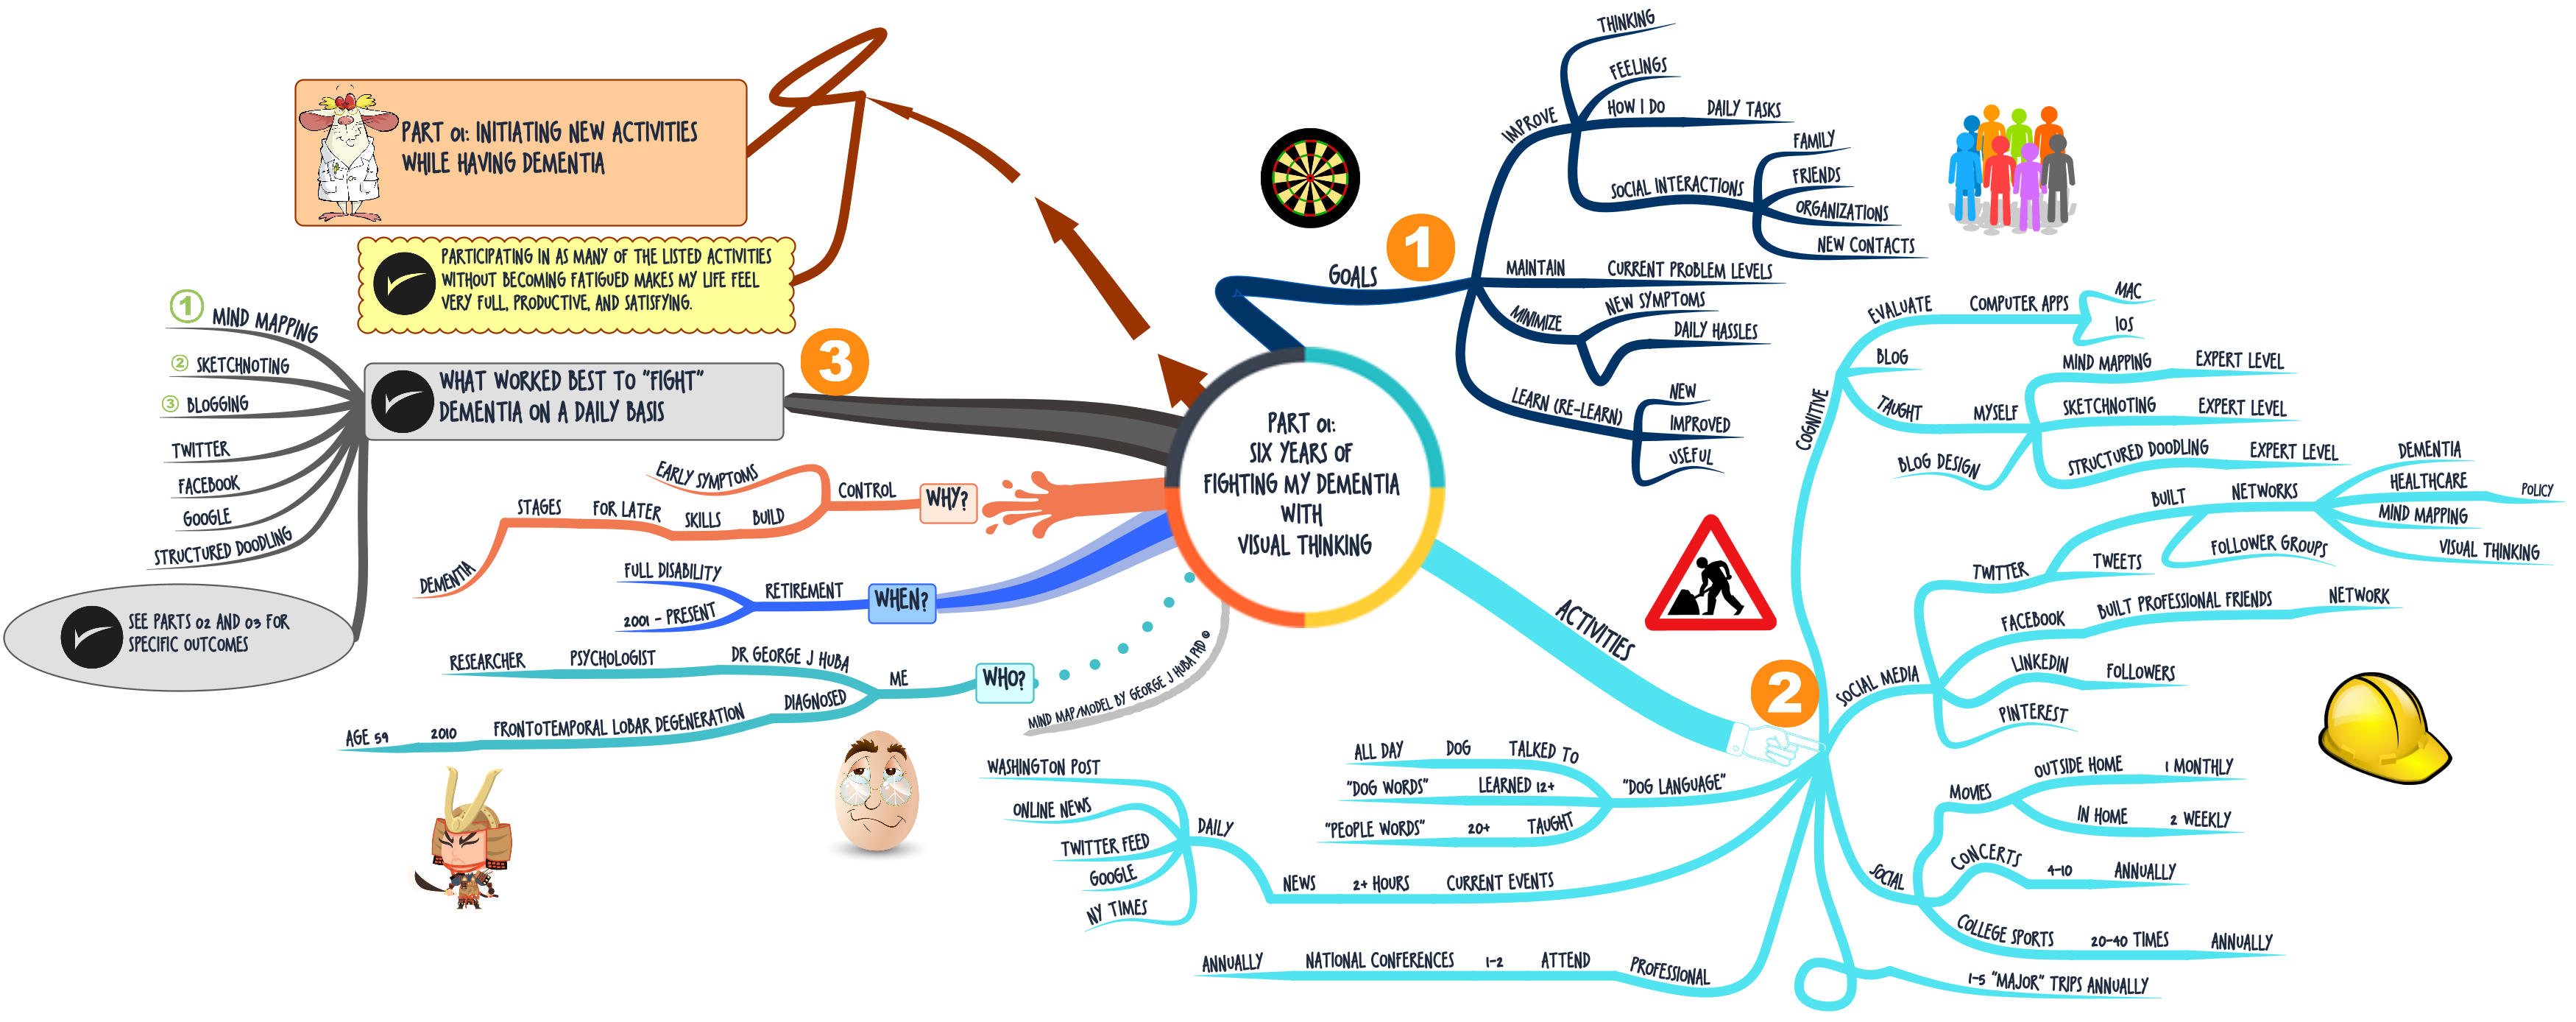 Mind Mapping Android And Windows Intelligence Officer Job Description Part  01 Activities1 Mind Mapping Android And